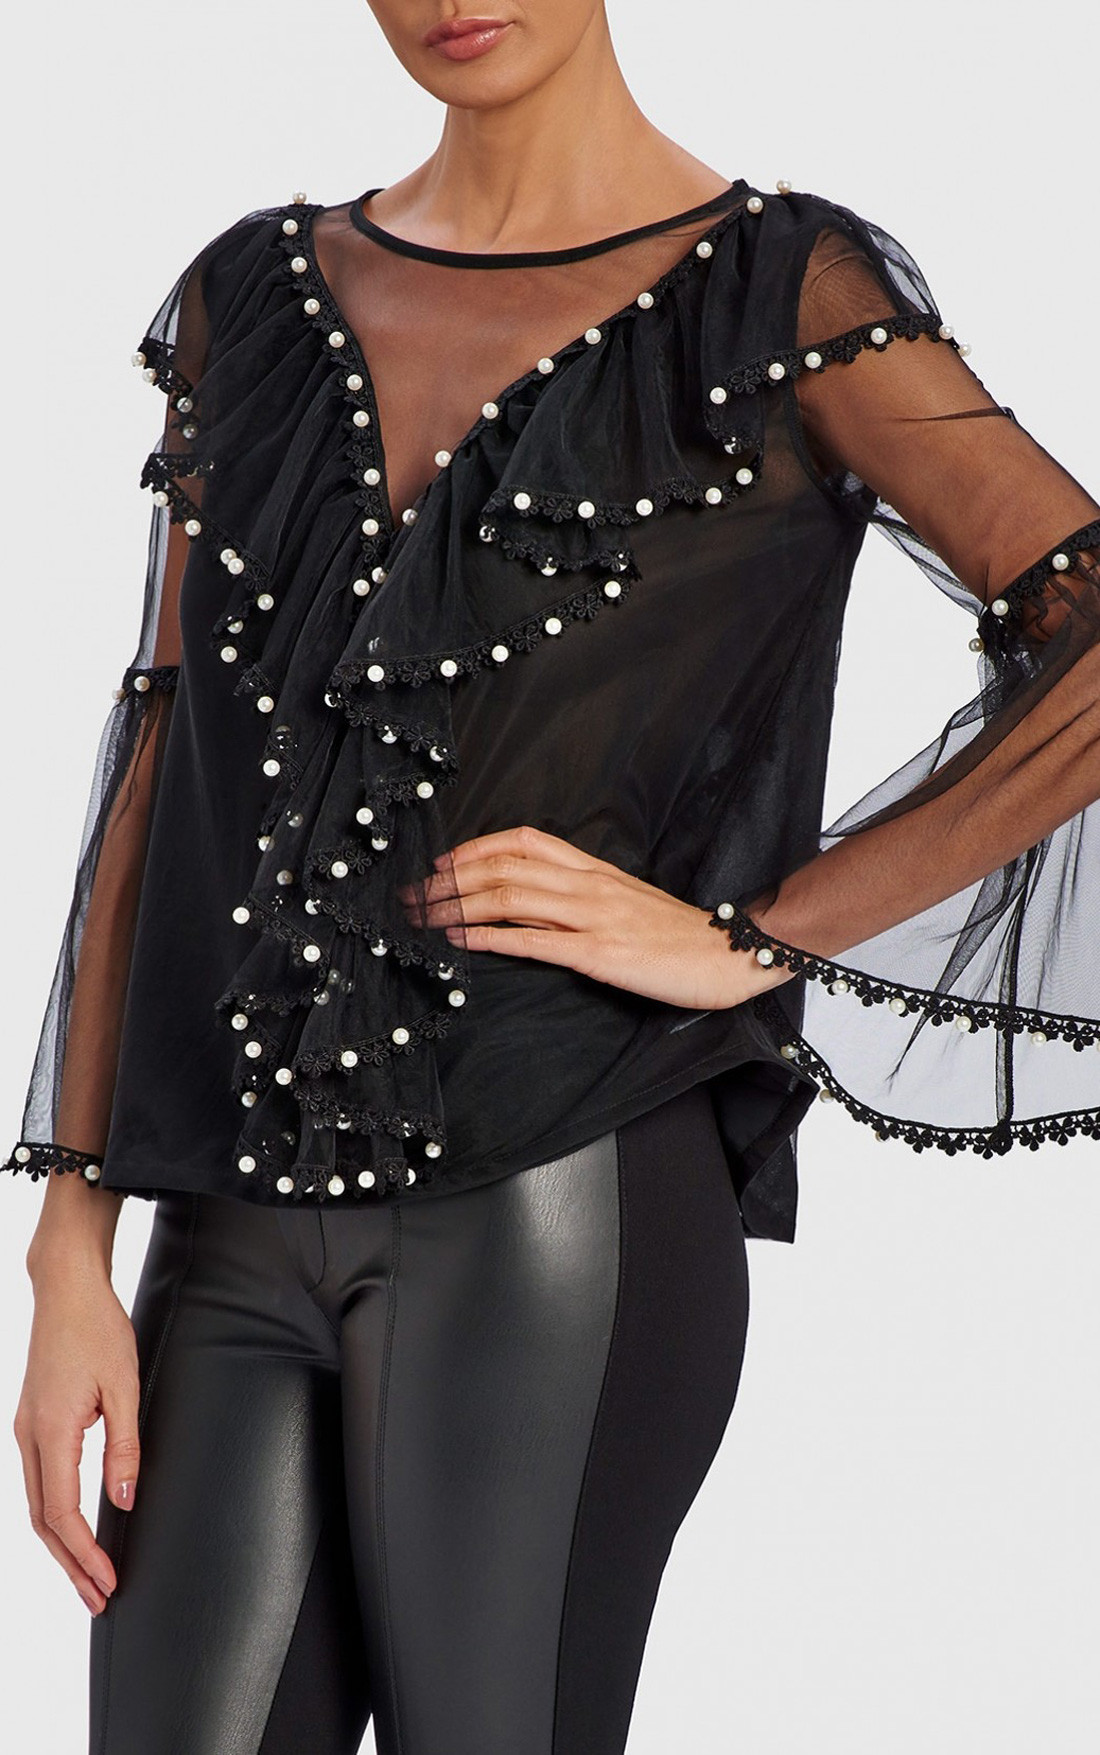 Forever Unique - Sandie Black Top With Pearl Detail (WF4306)